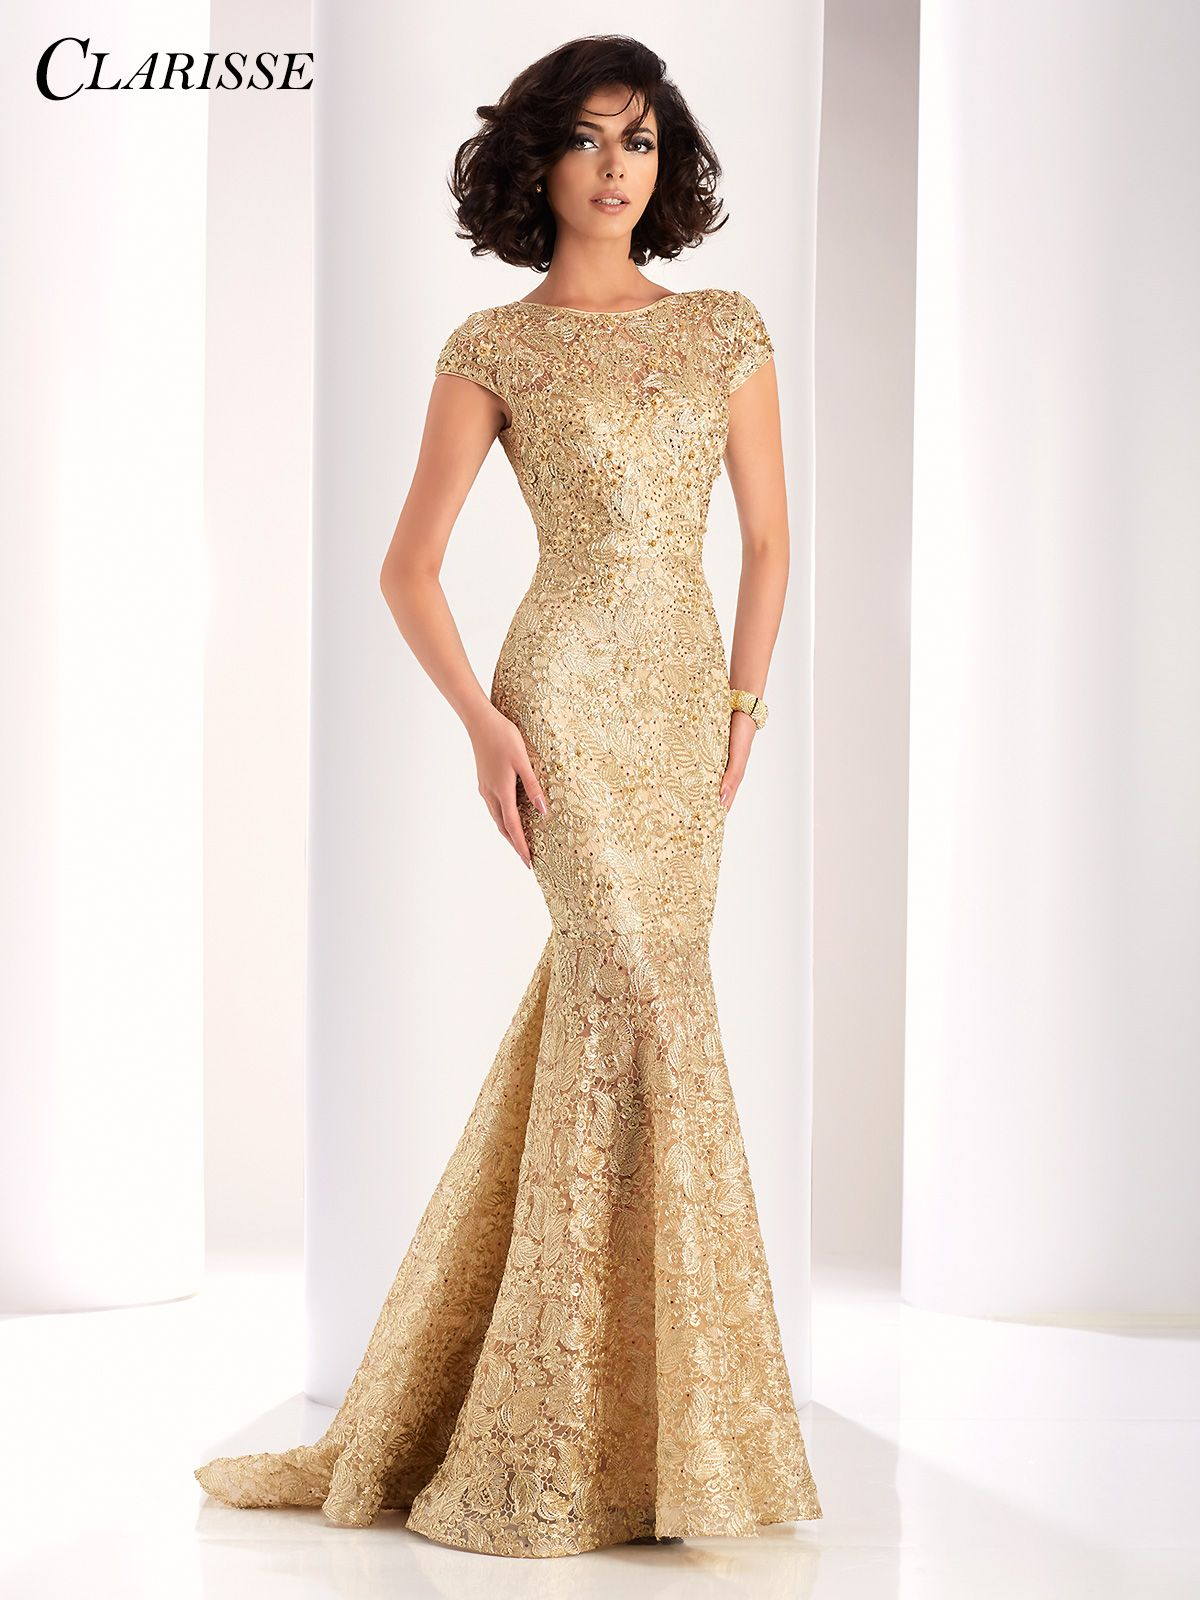 Clarisse Gold Lace Mermaid Evening Gown 4852 | Lace mermaid ...